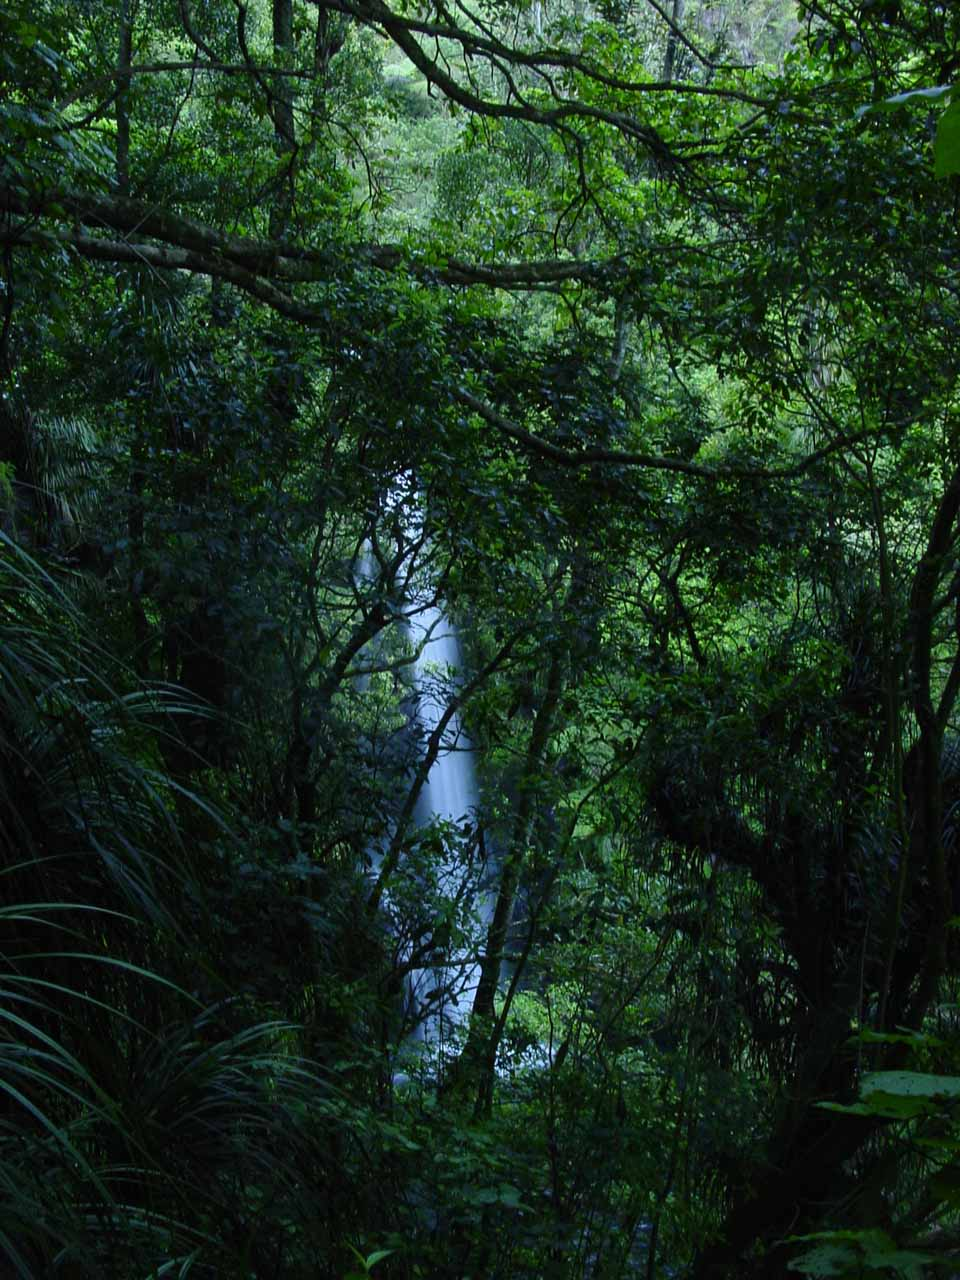 Looking back at what appeared to be the lower drop of Kaiate Falls through some thick foliage